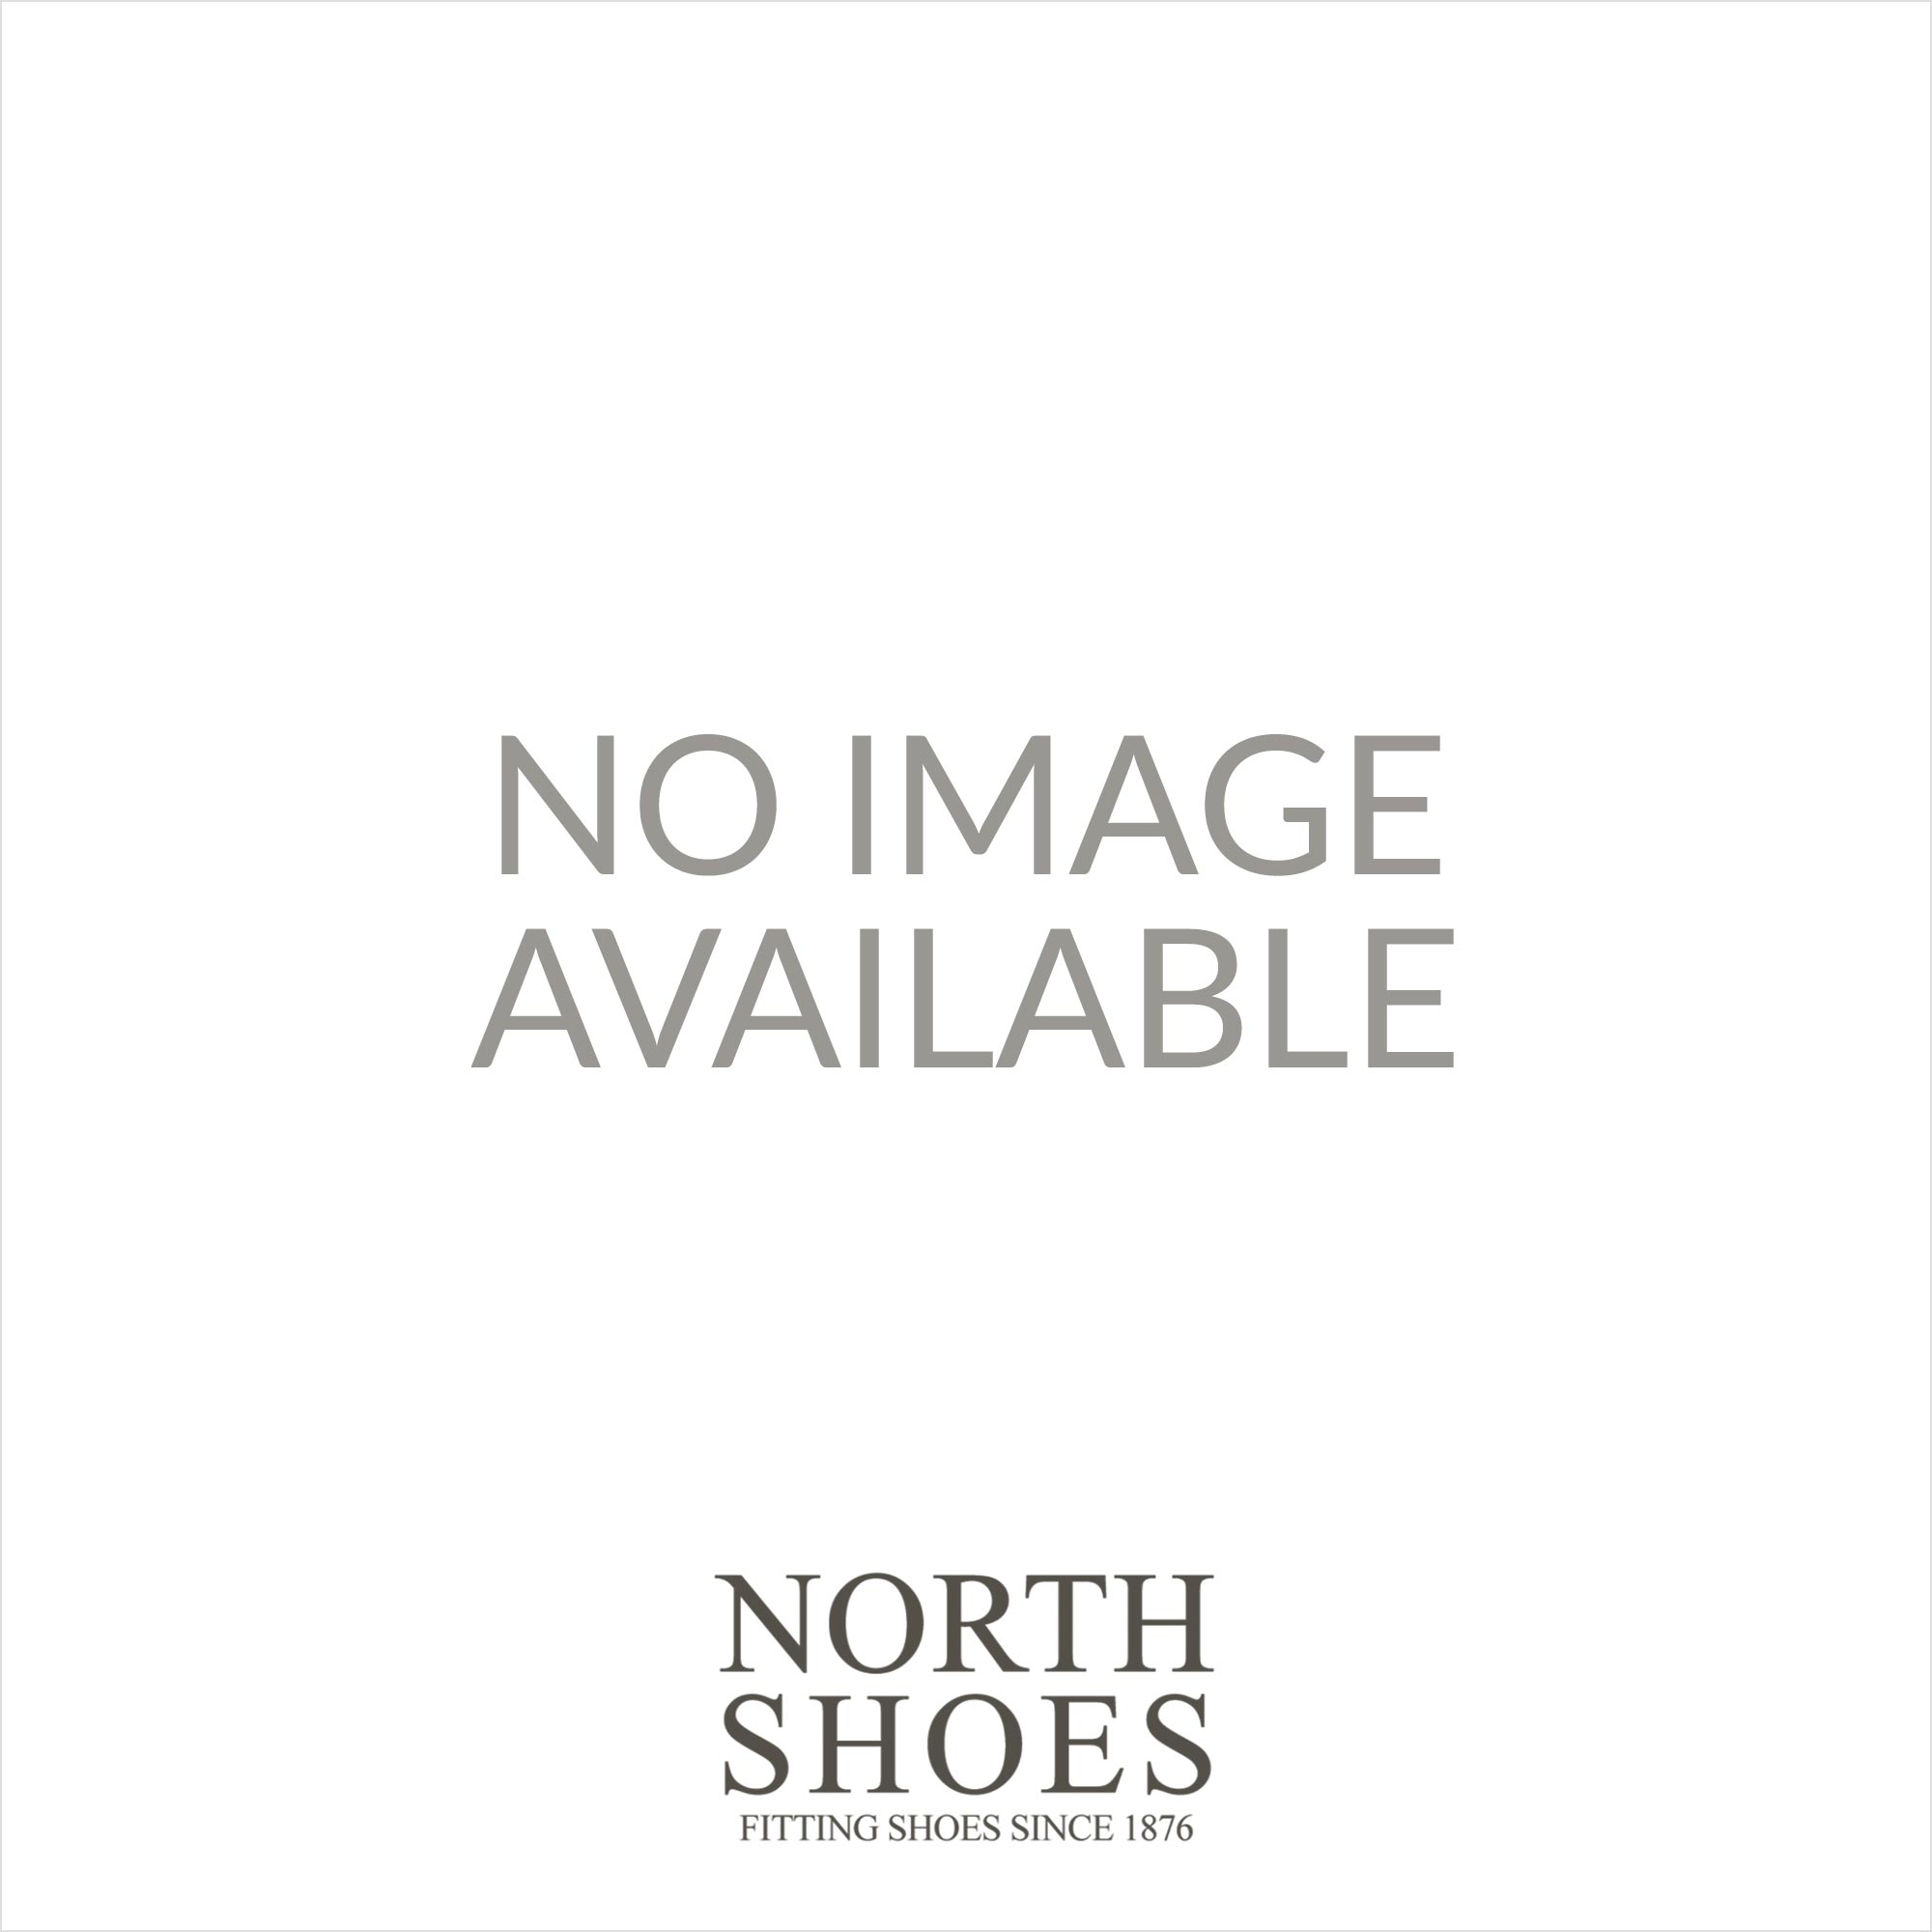 07b9b42fe455 ... Fitflop Chrissie Shearling Navy Suede Leather Womens Slip On Mule  Slipper